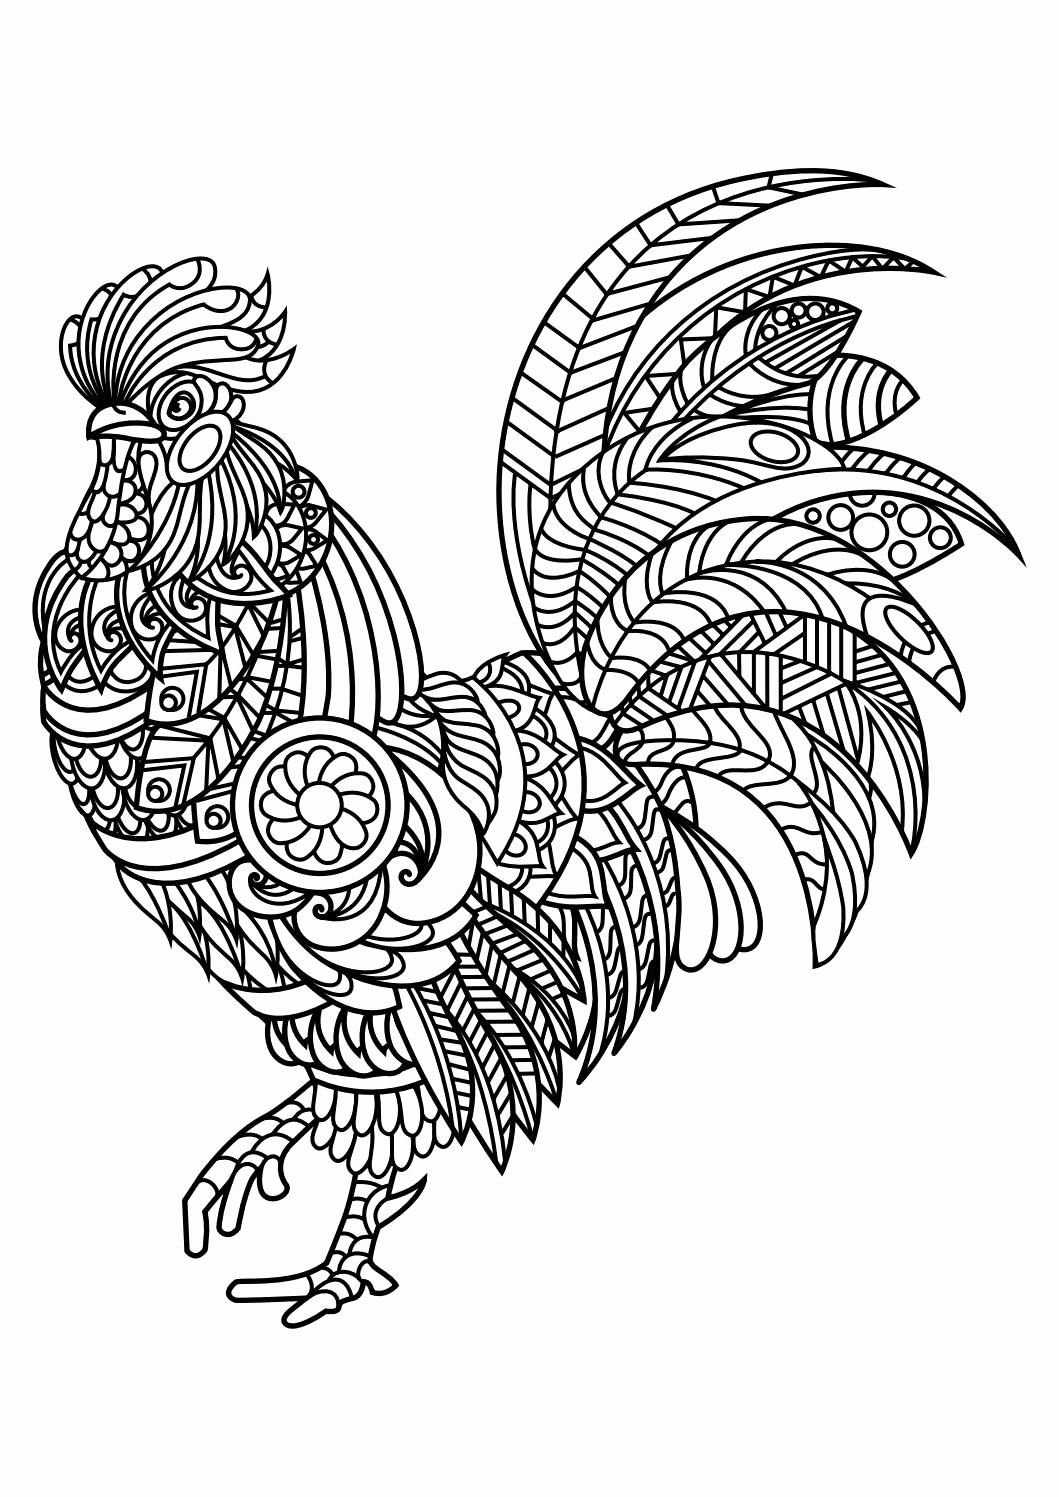 Coloring Books For Men Fresh Animal Coloring Pages Pdf Chicken Coloring Pages Horse Coloring Pages Bird Coloring Pages